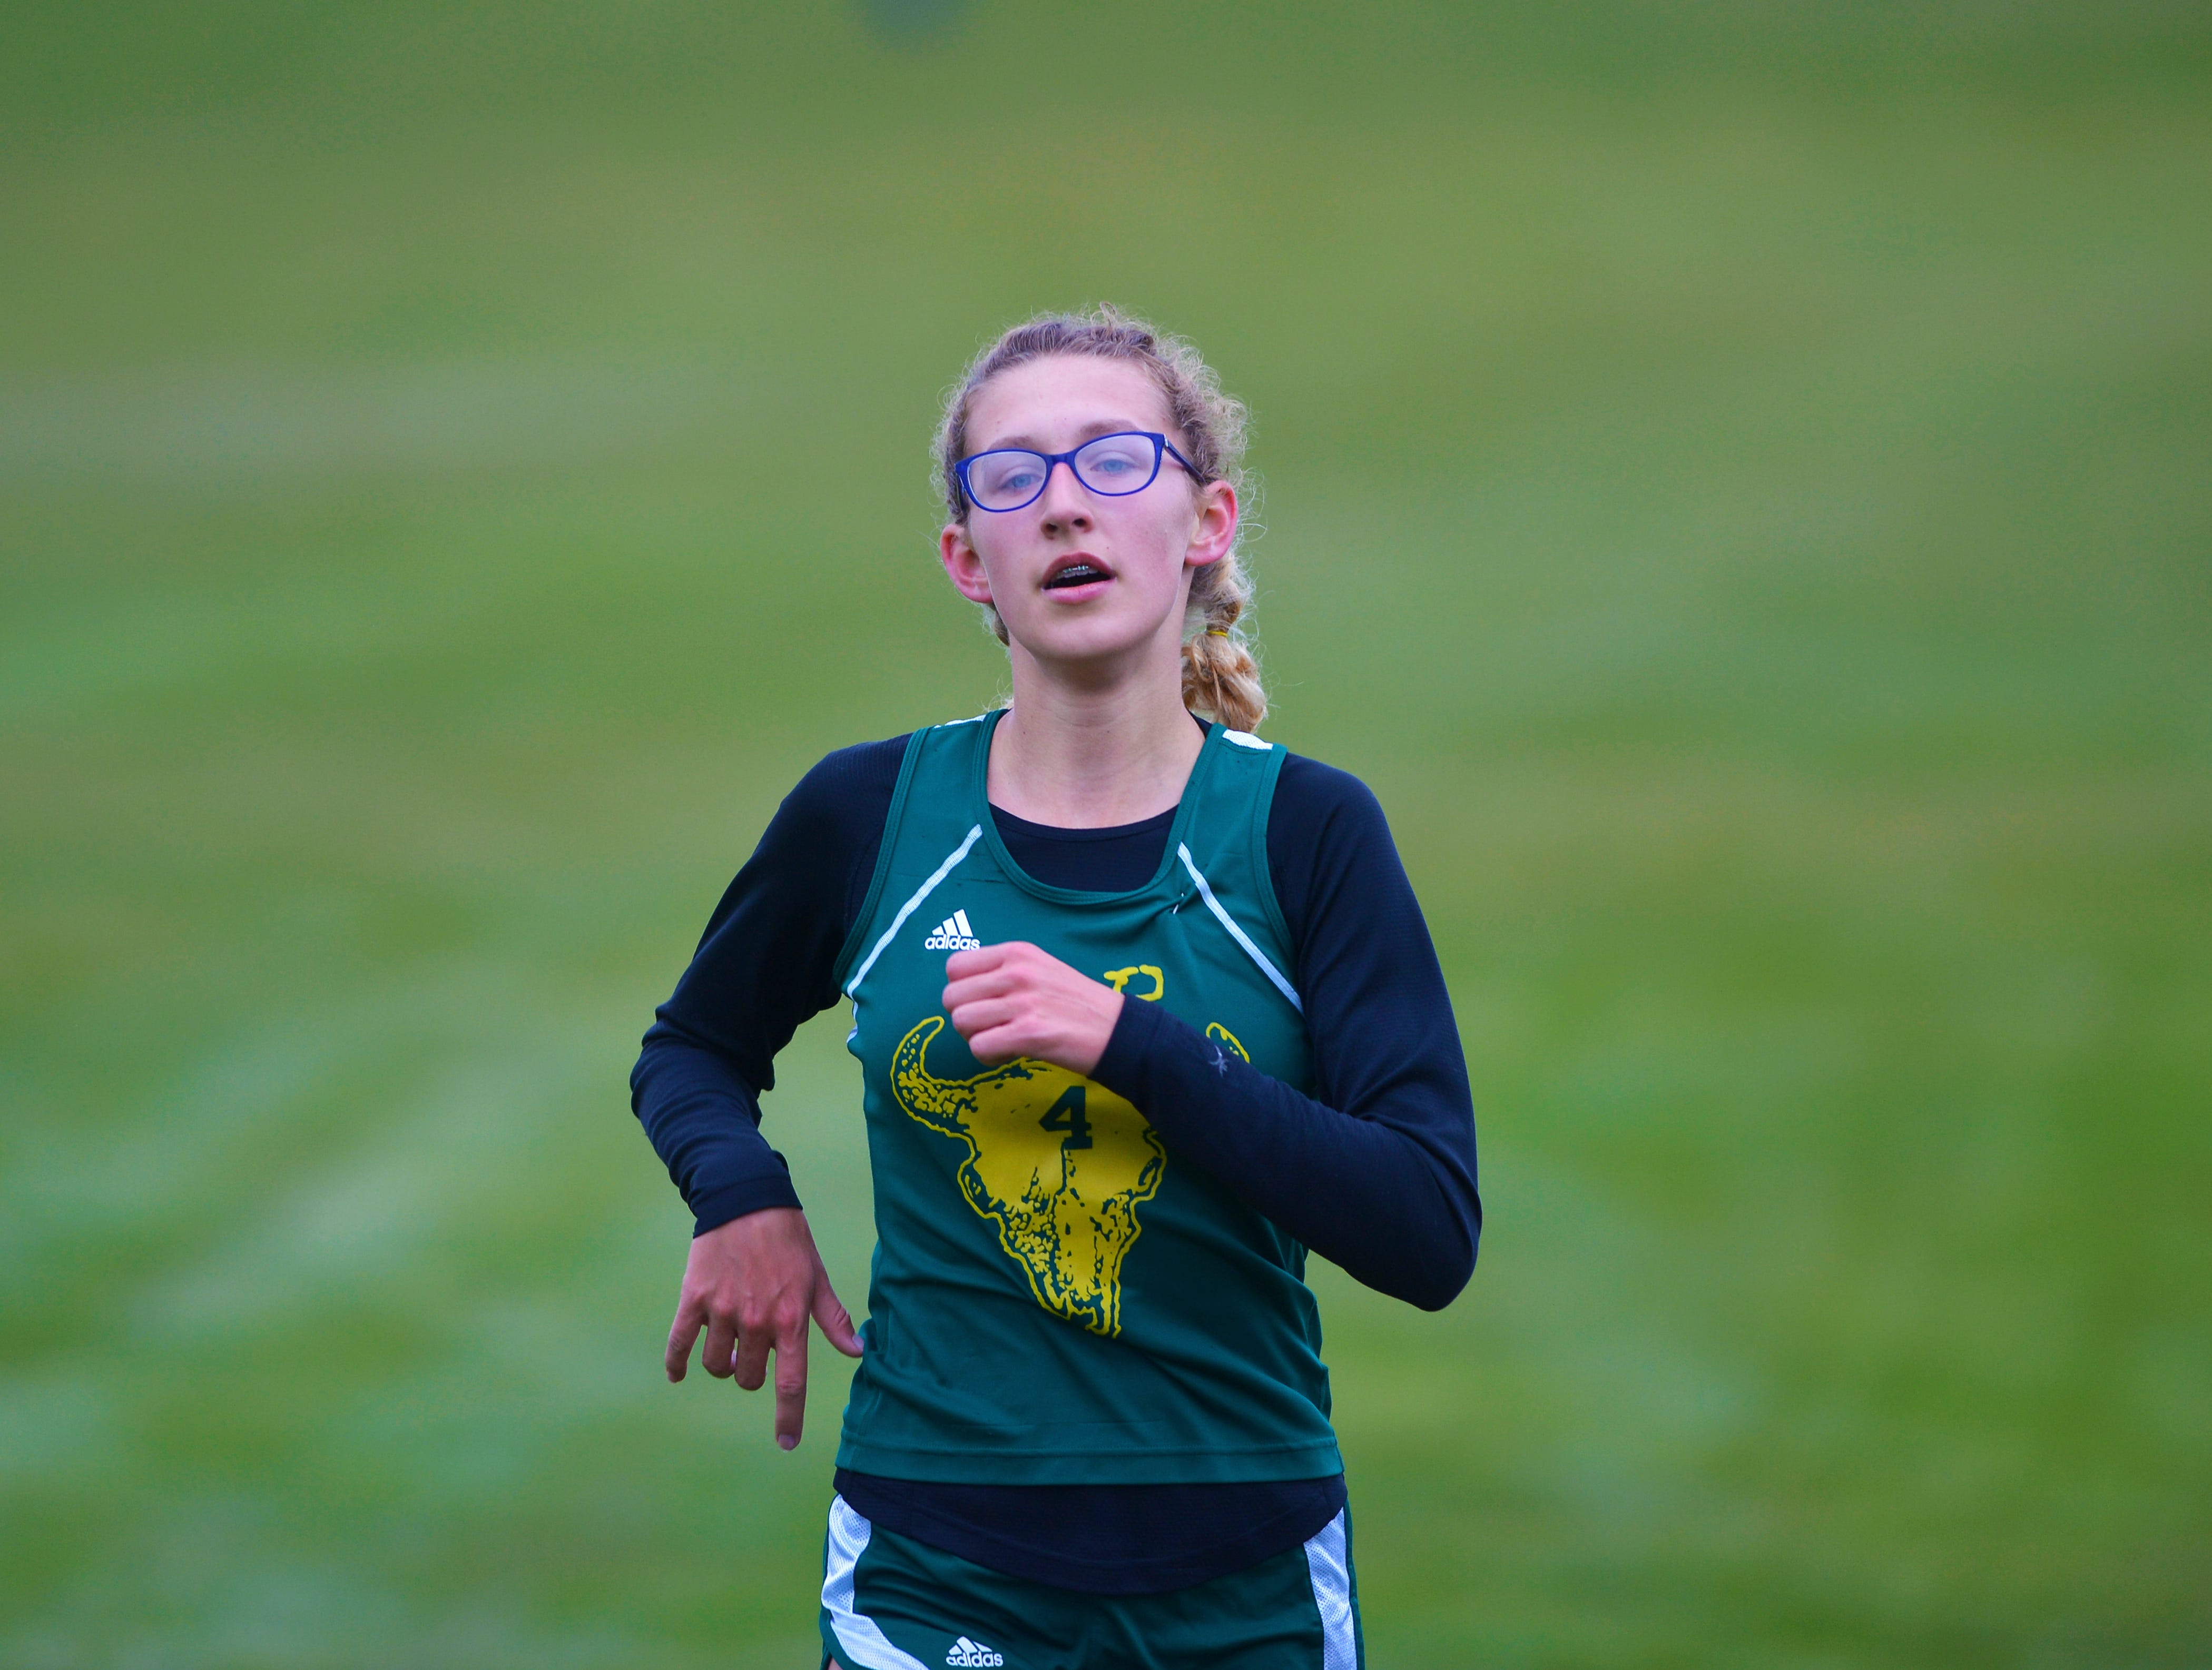 CMR's McKenzie Connell crosses the finish line in second during the crosstown cross country meet on Wednesday at Anaconda Hills Golf Course.